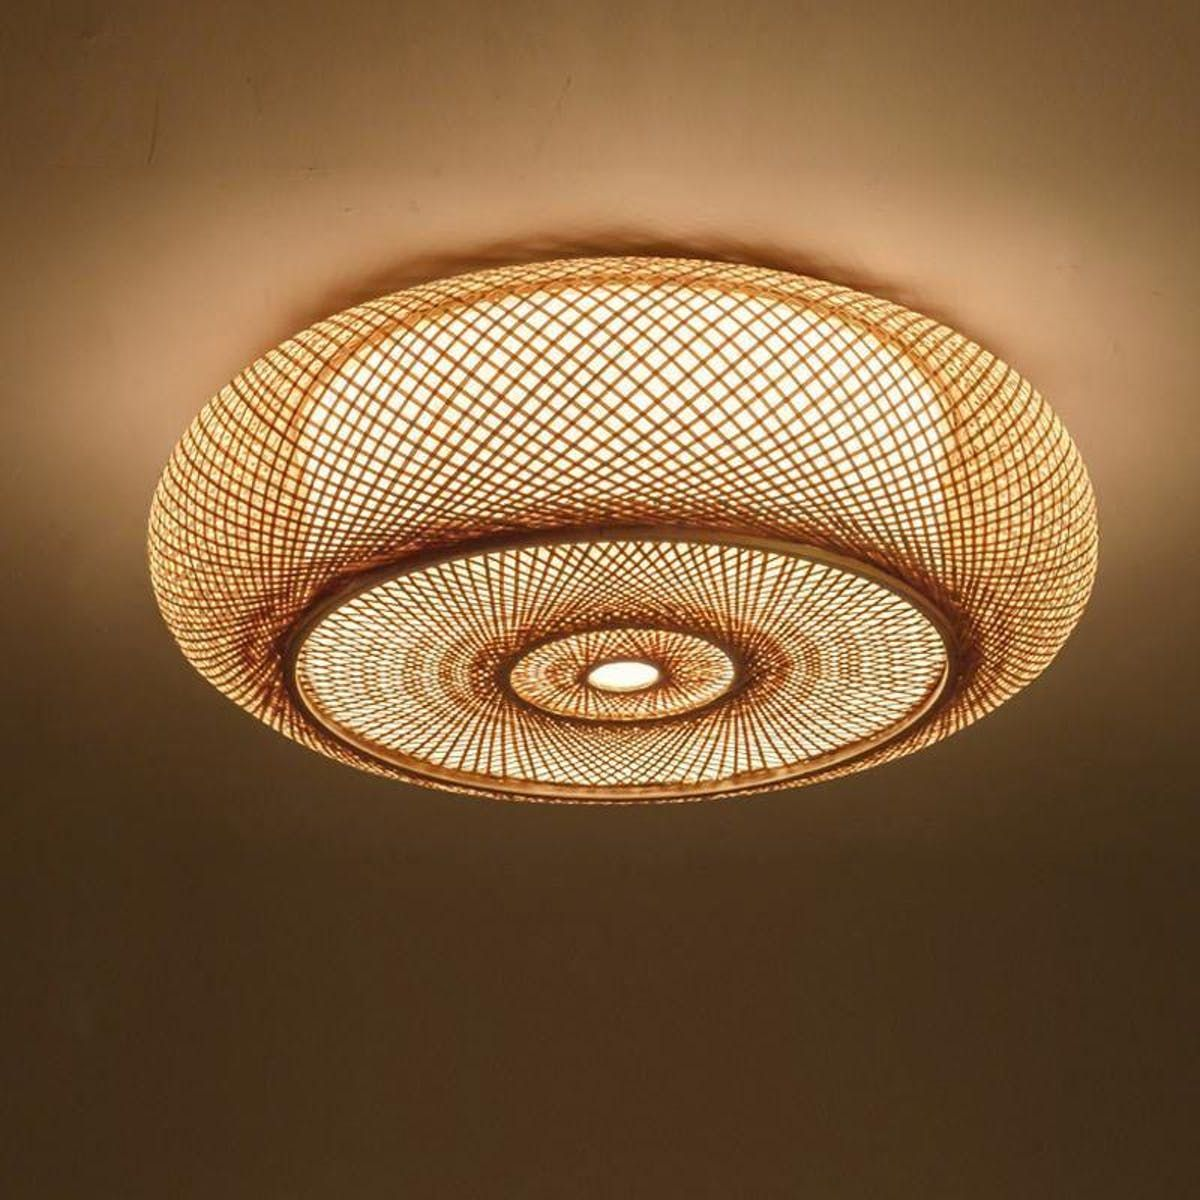 Bamboo Round Ceiling Plafon Lamp Bedroom Ceiling Light Ceiling Lights Hanging Ceiling Lamps